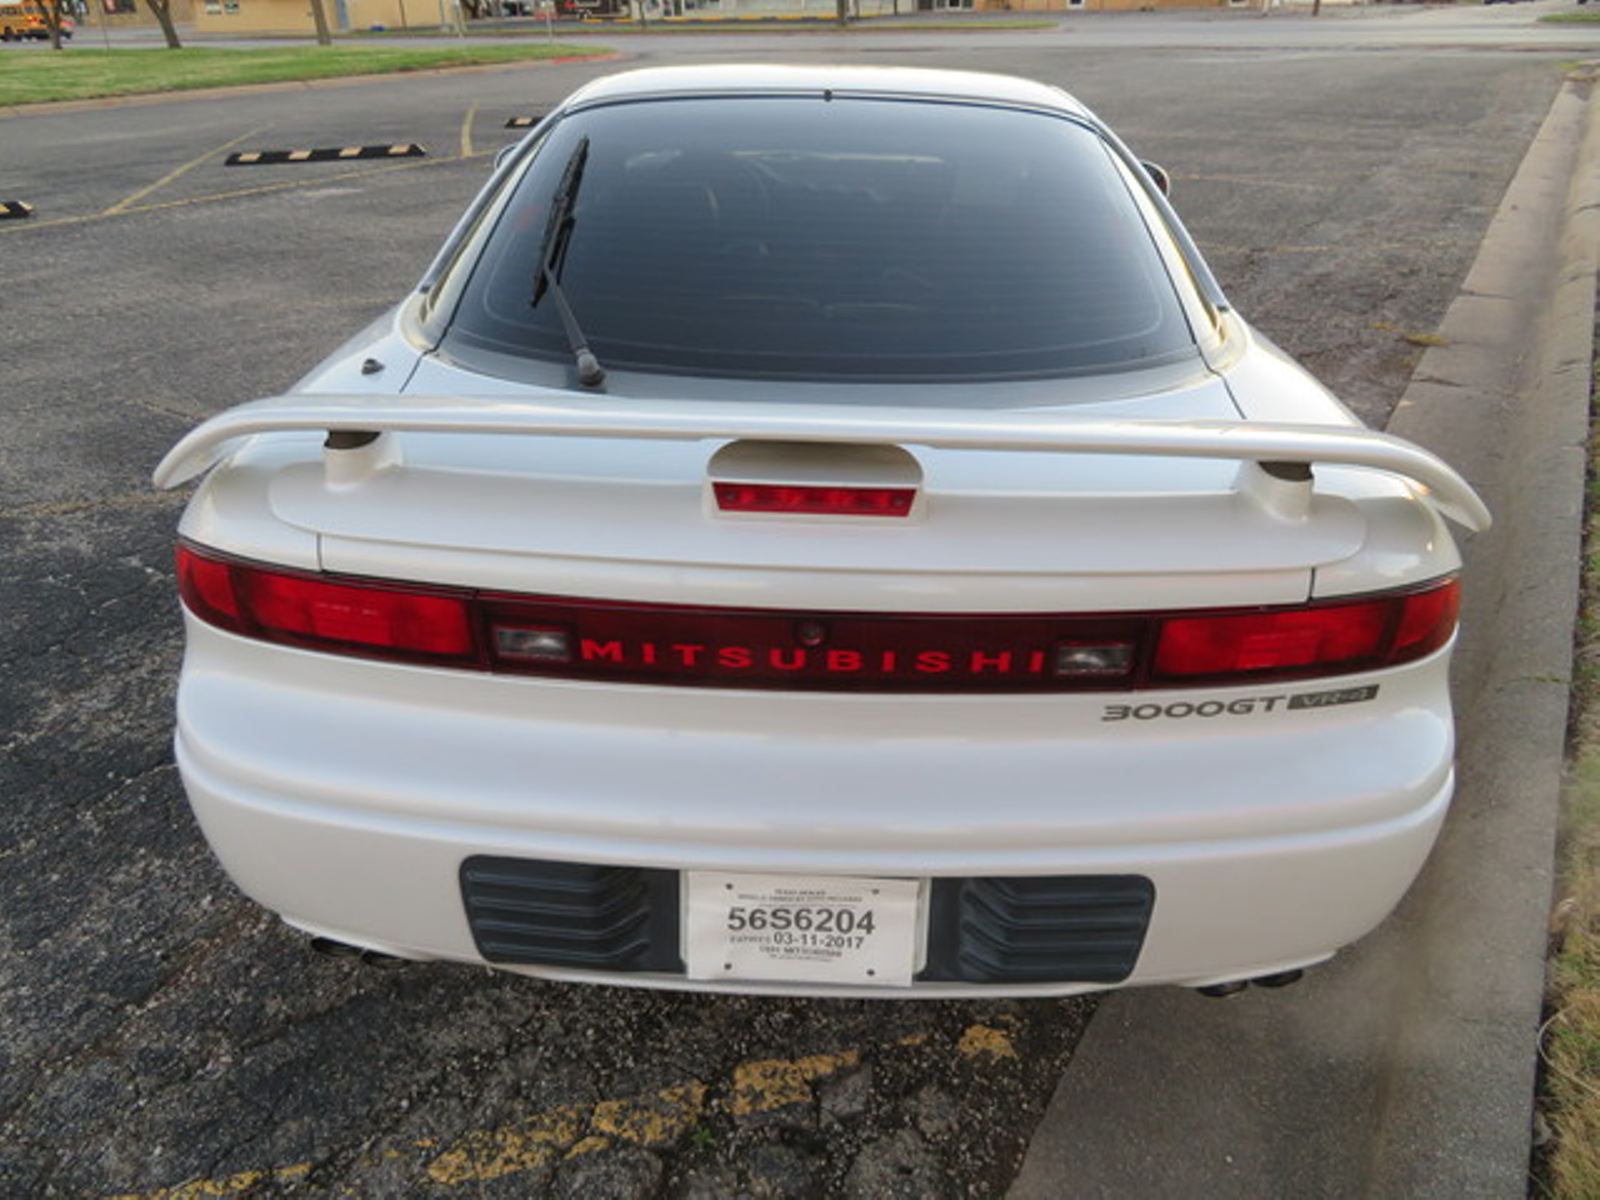 supra dragon forums bodybuilding for red sale com mitsubishi turbo showthread or